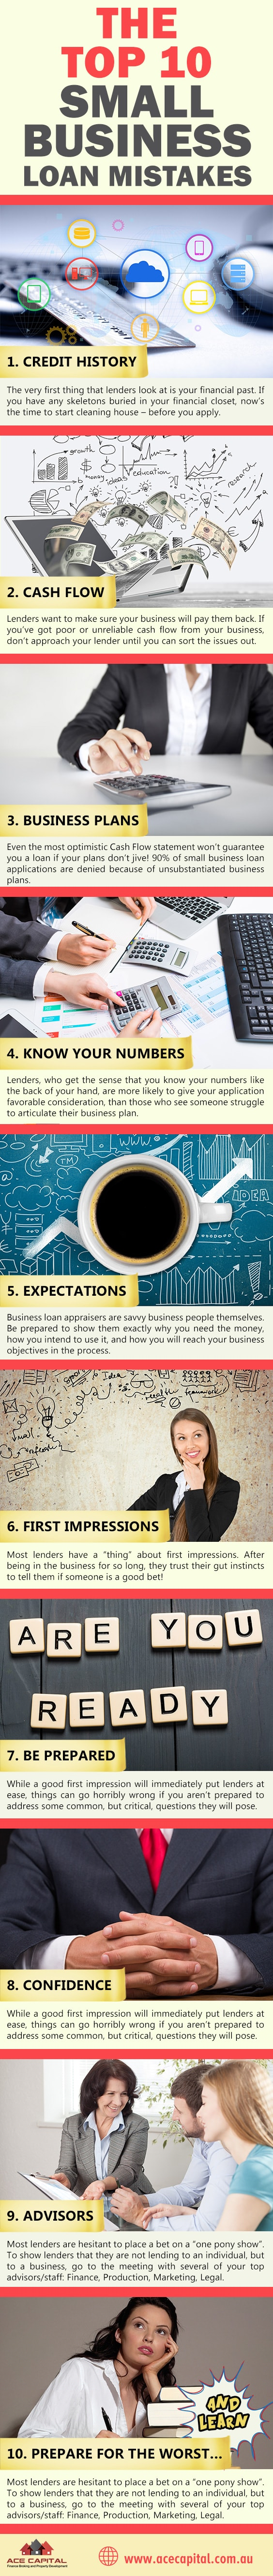 small business finance guide